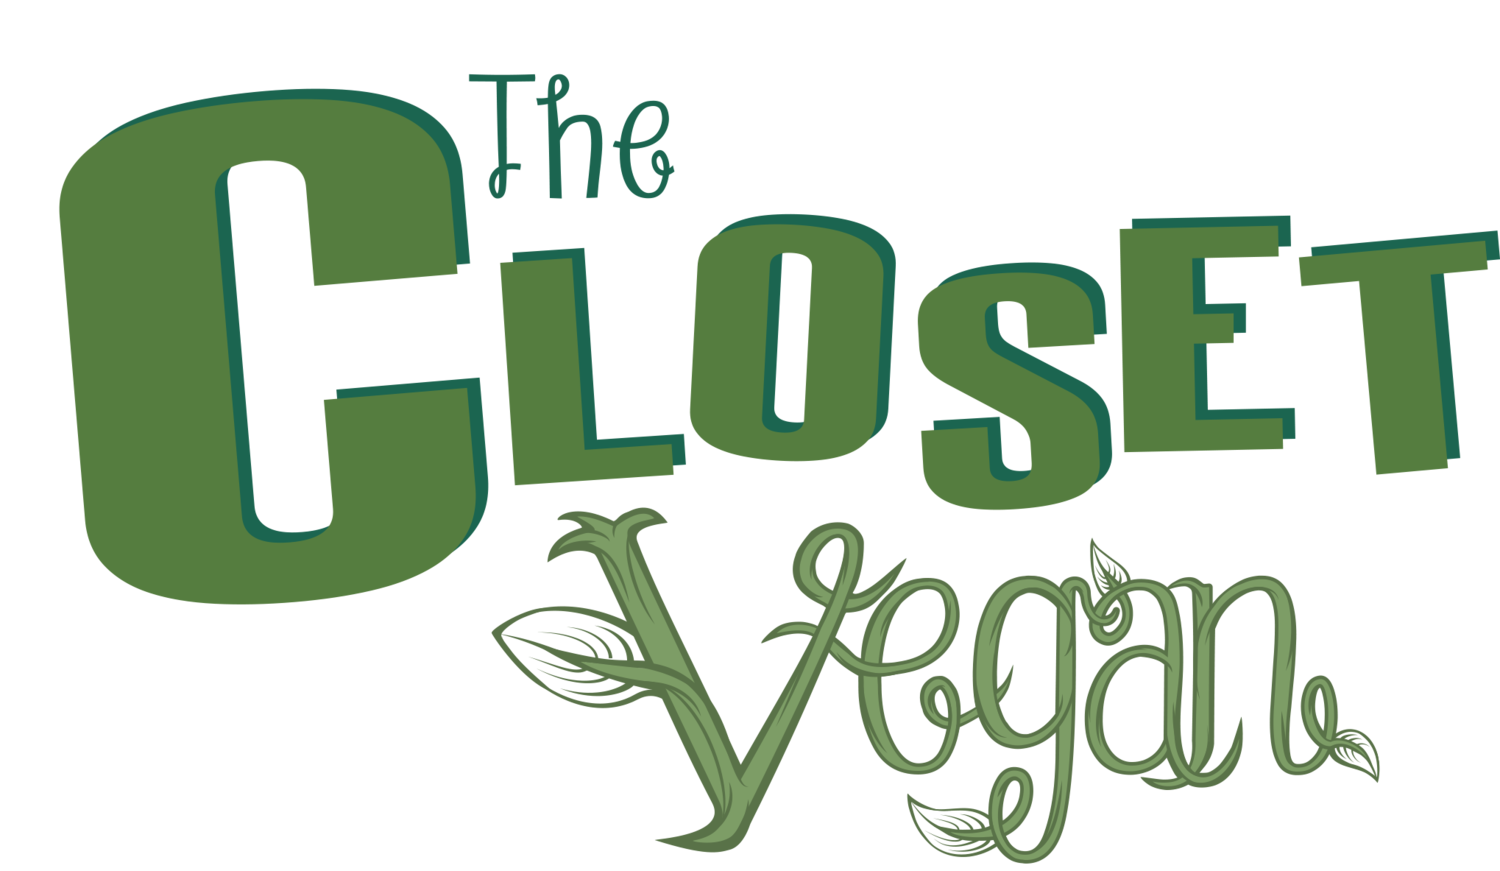 The Closet Vegan